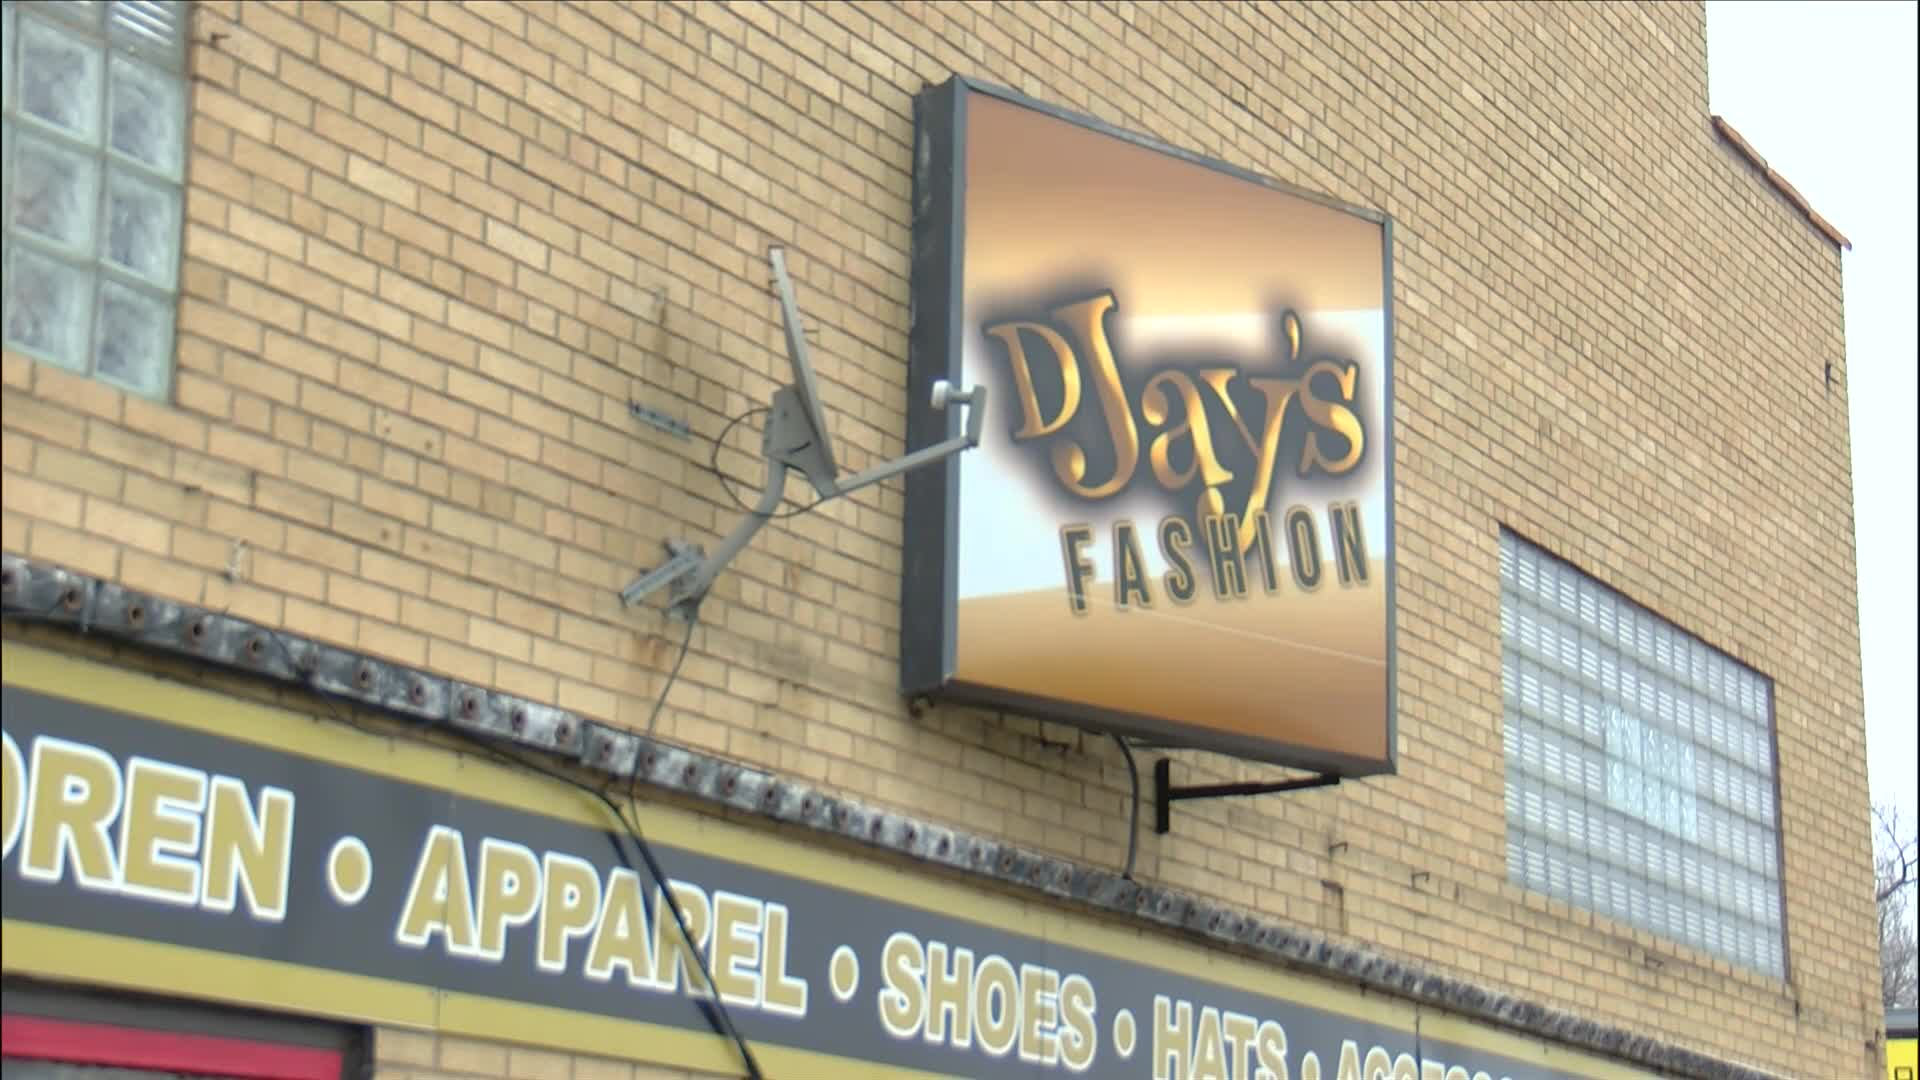 DJays Fashion store front